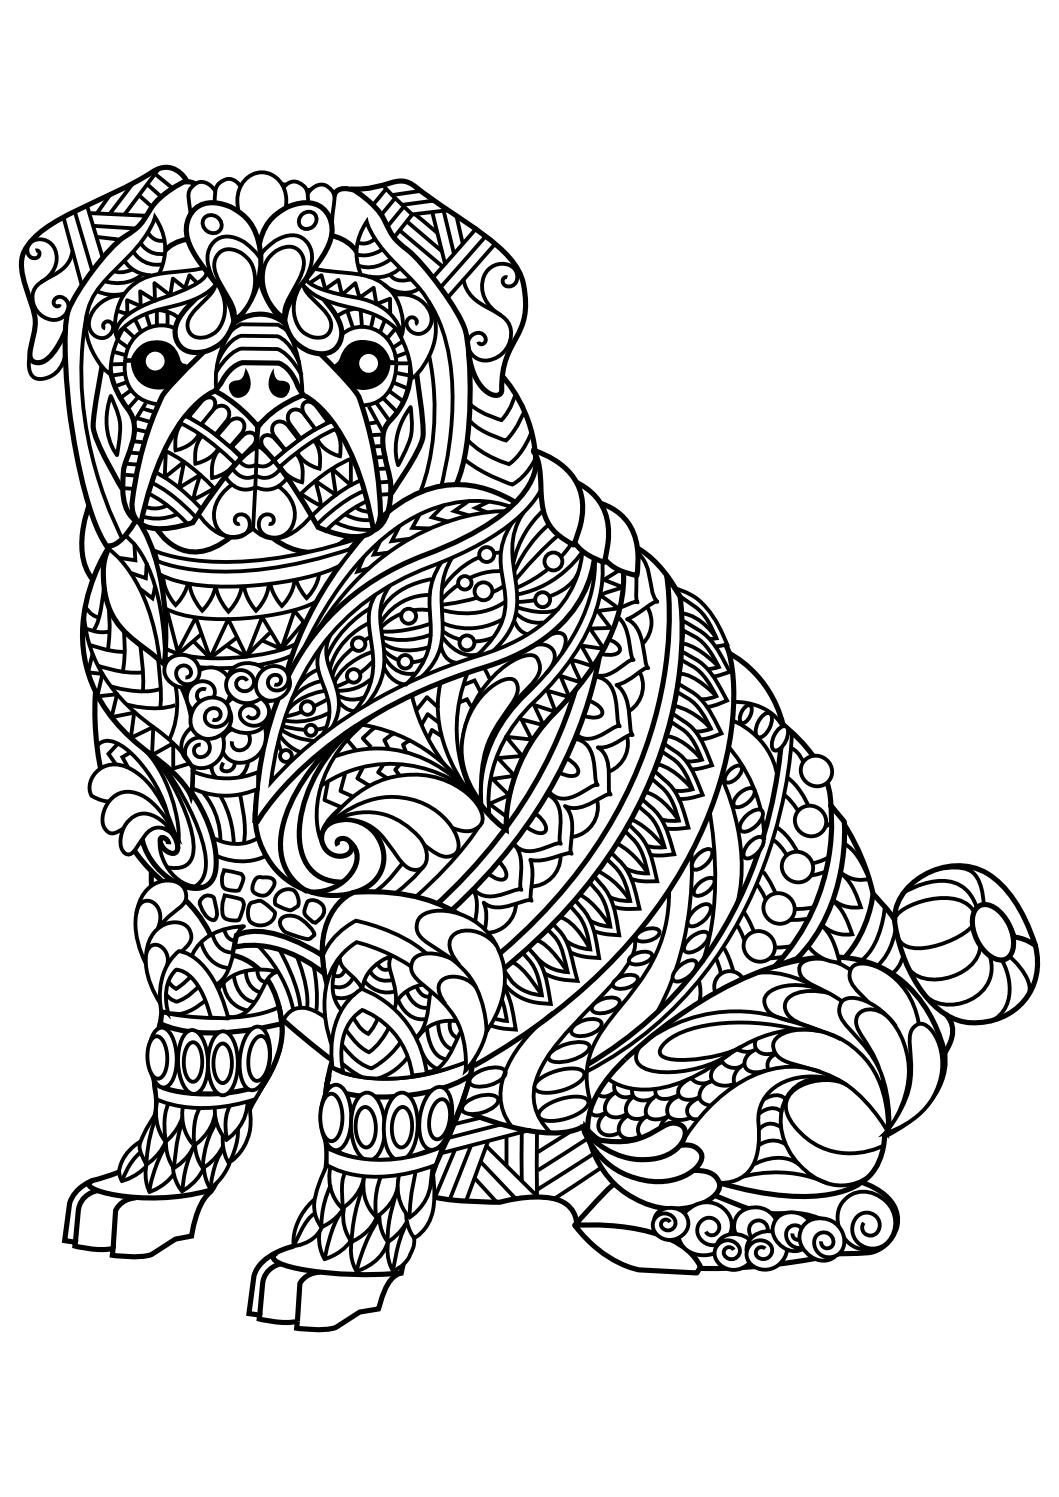 Animal Coloring Pages Pdf Dog Coloring Book Horse Coloring Pages Dog Coloring Page